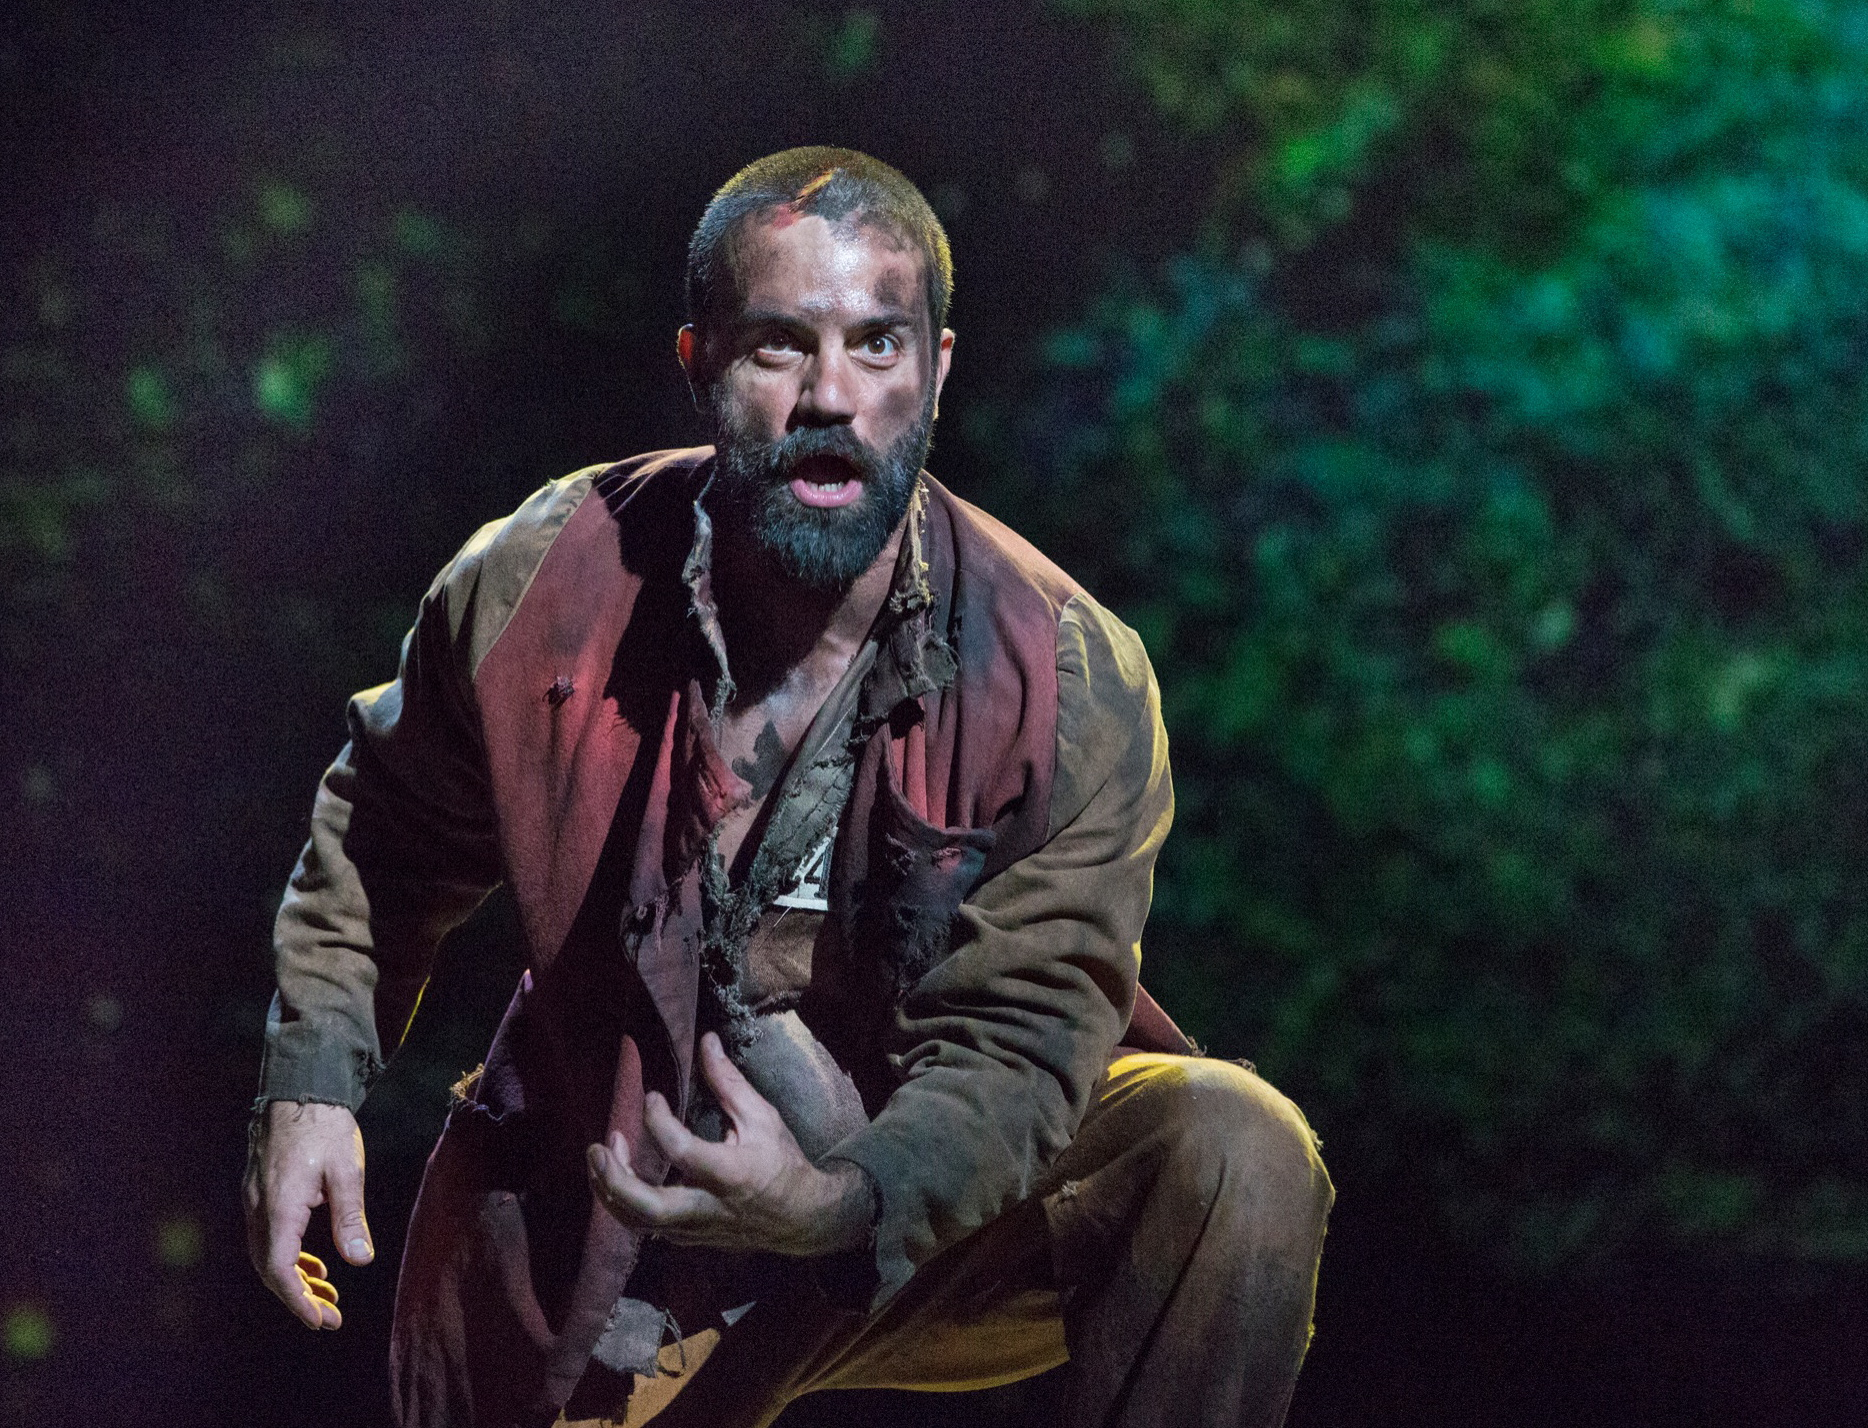 jean valjean as the hero of les misetrables Twenty years in the conception and execution, les misérables was first  the  protagonist of les misérables, jean valjean, is also in exile from the world of  men  what do you think hugo values in these heroic characters and how does  his.